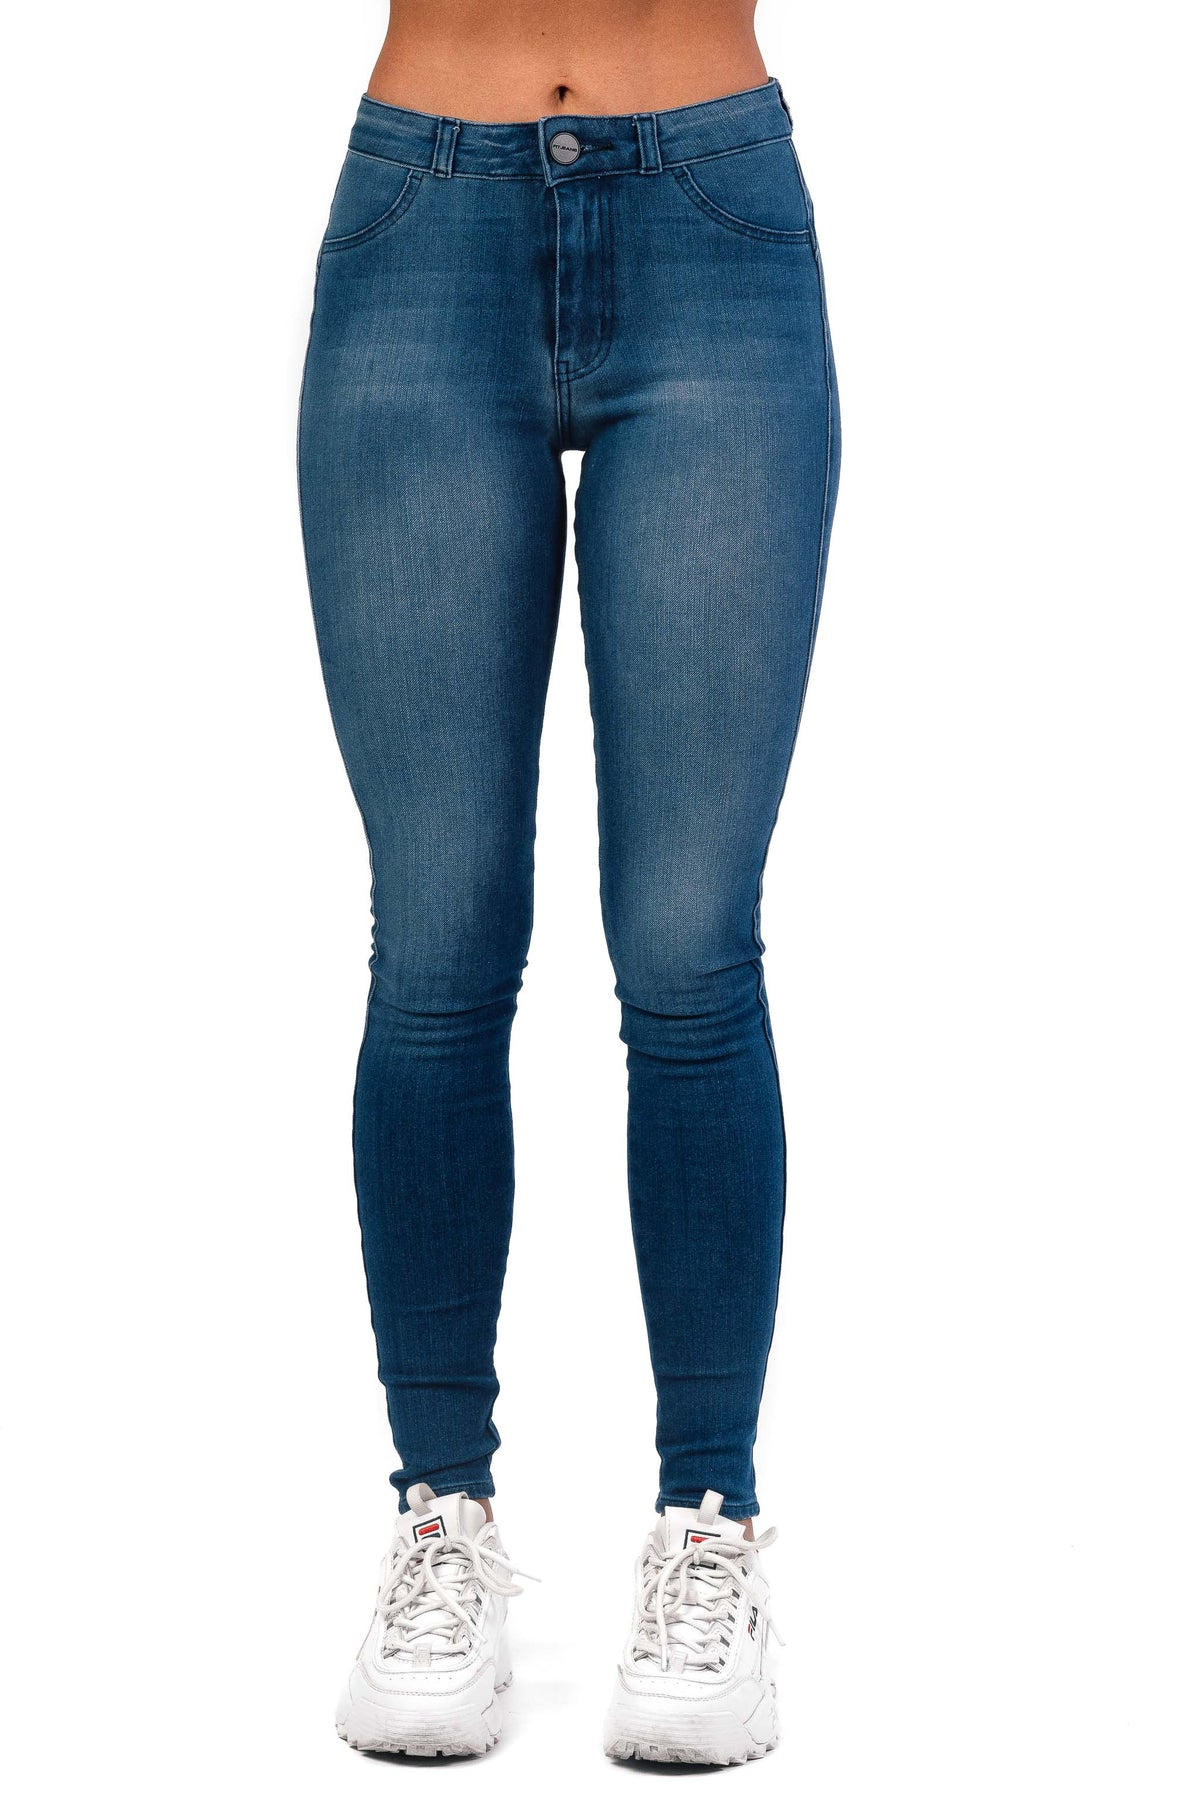 Womens 360 Mid Waisted Fitjeans - Azure Blue